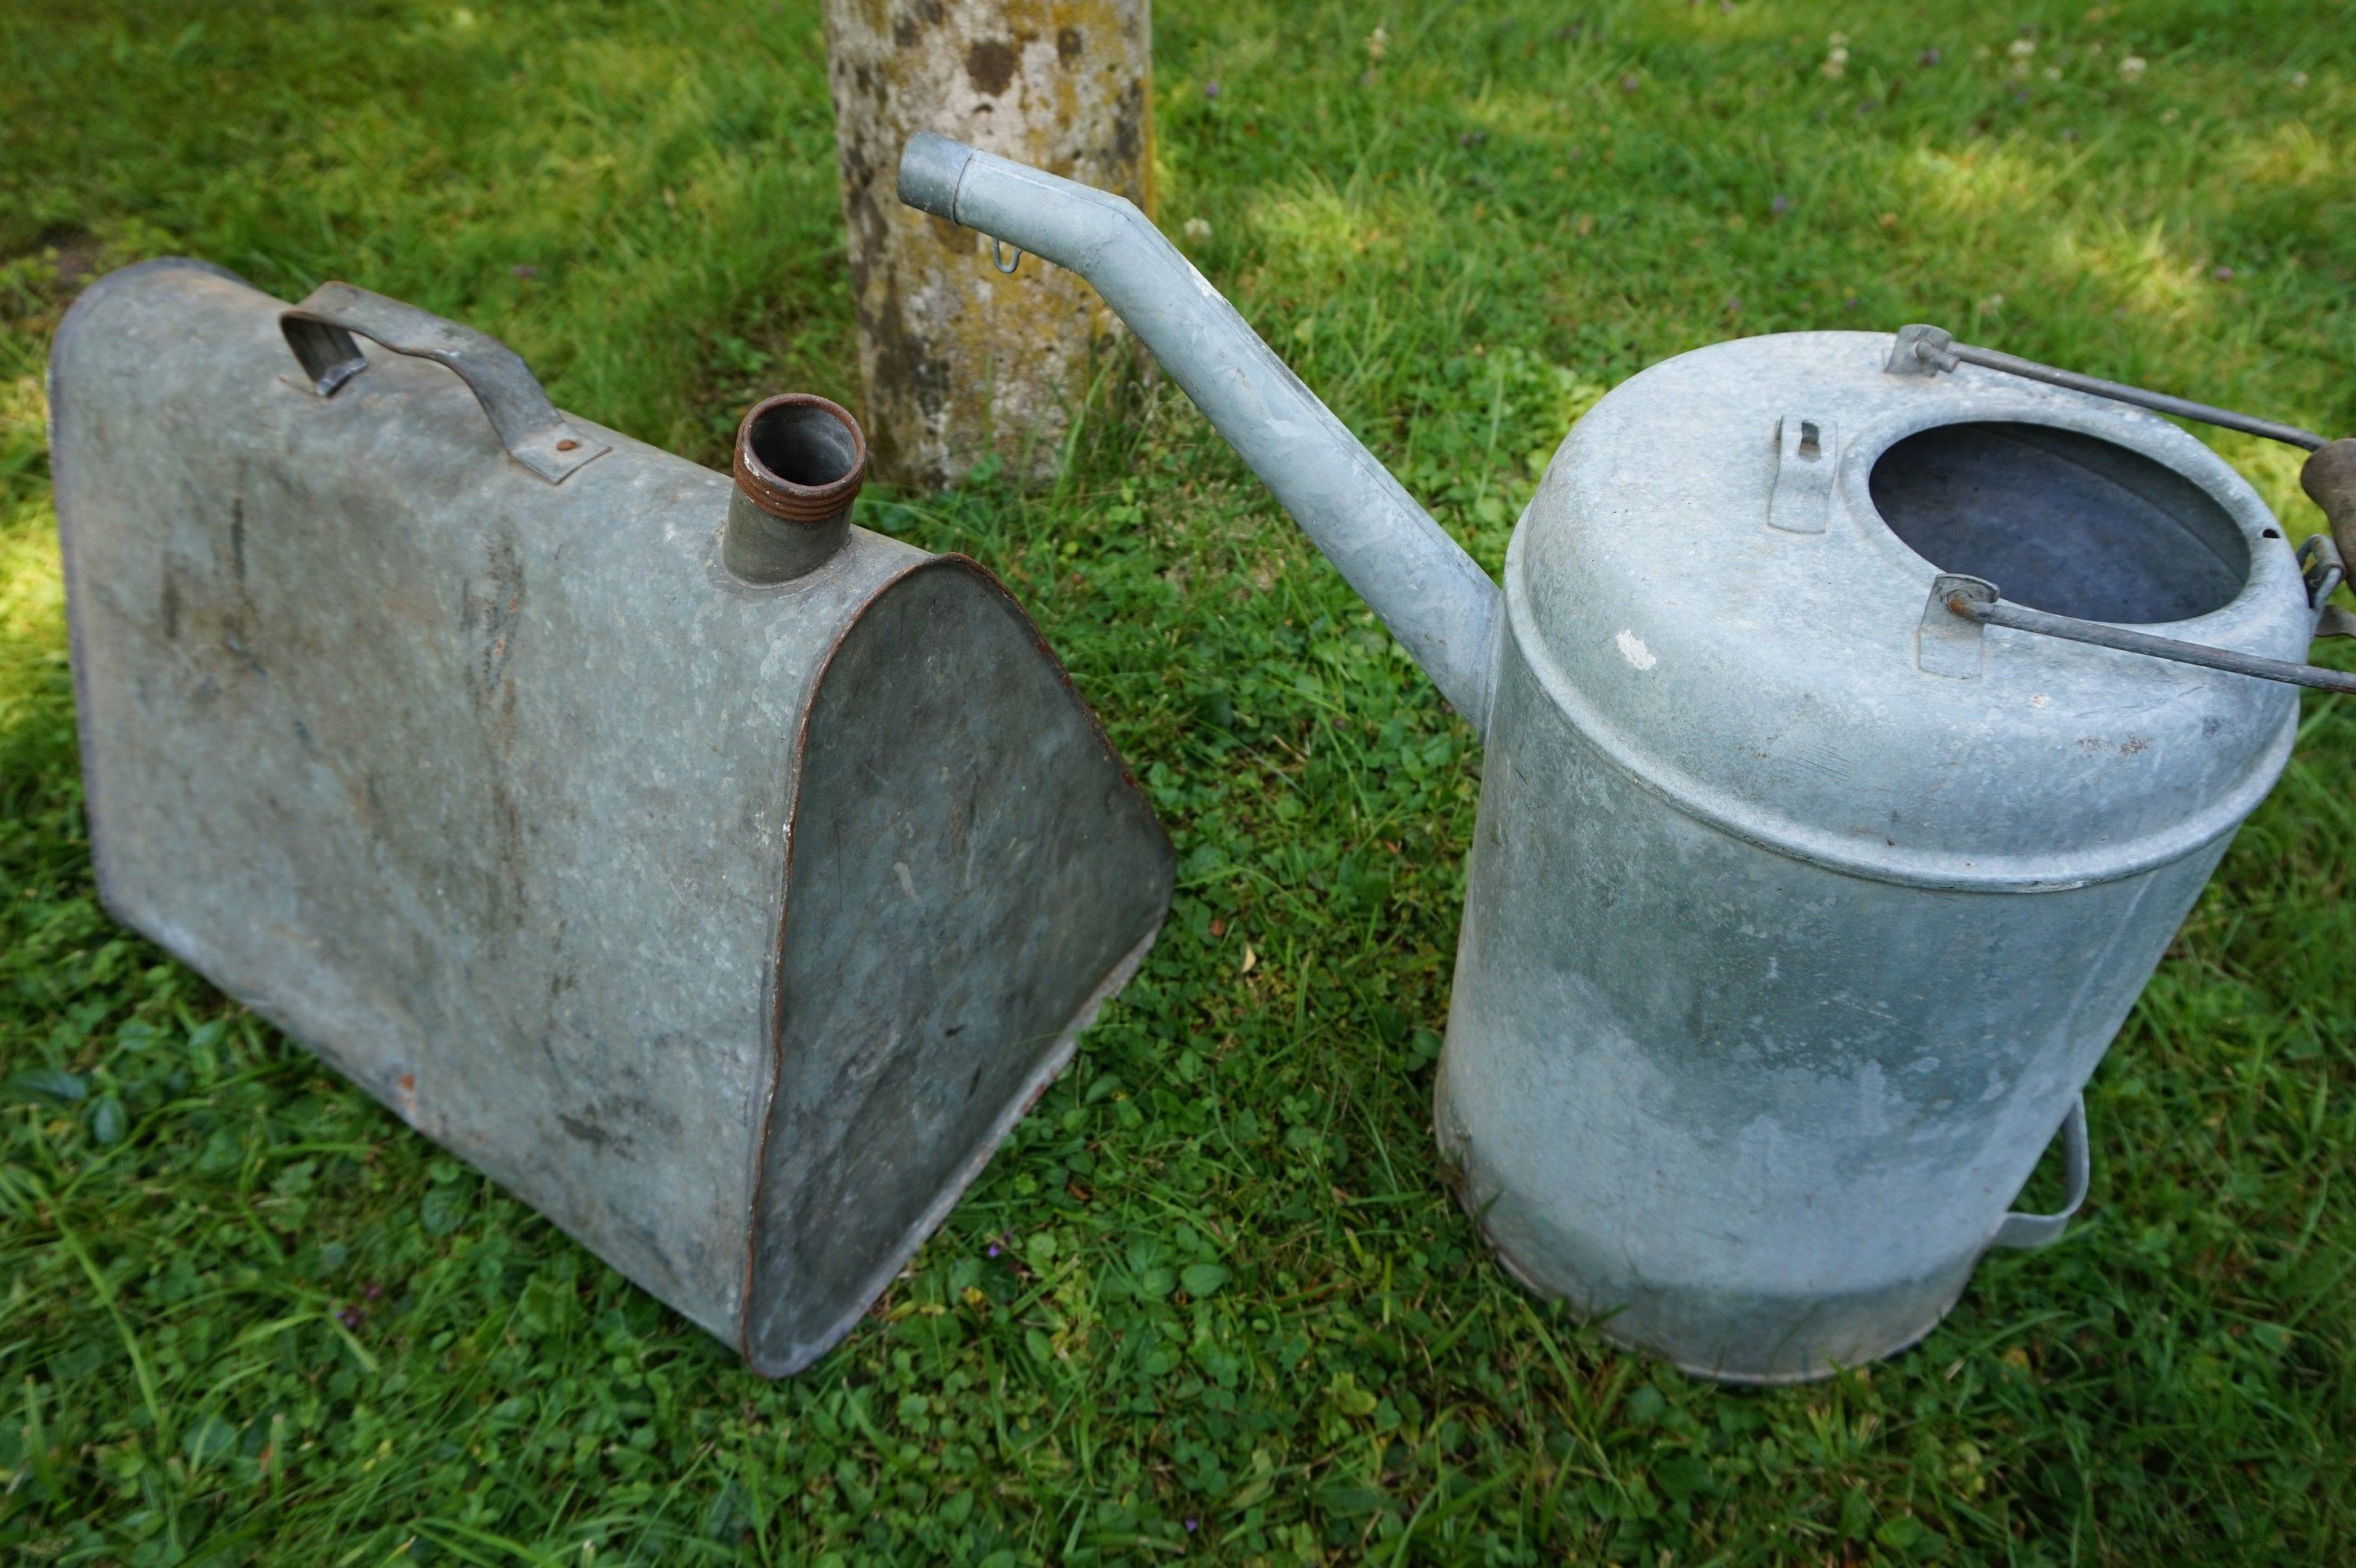 Vintage Retro Gas Cans And Canisters From Zinc Car Workshop Deco